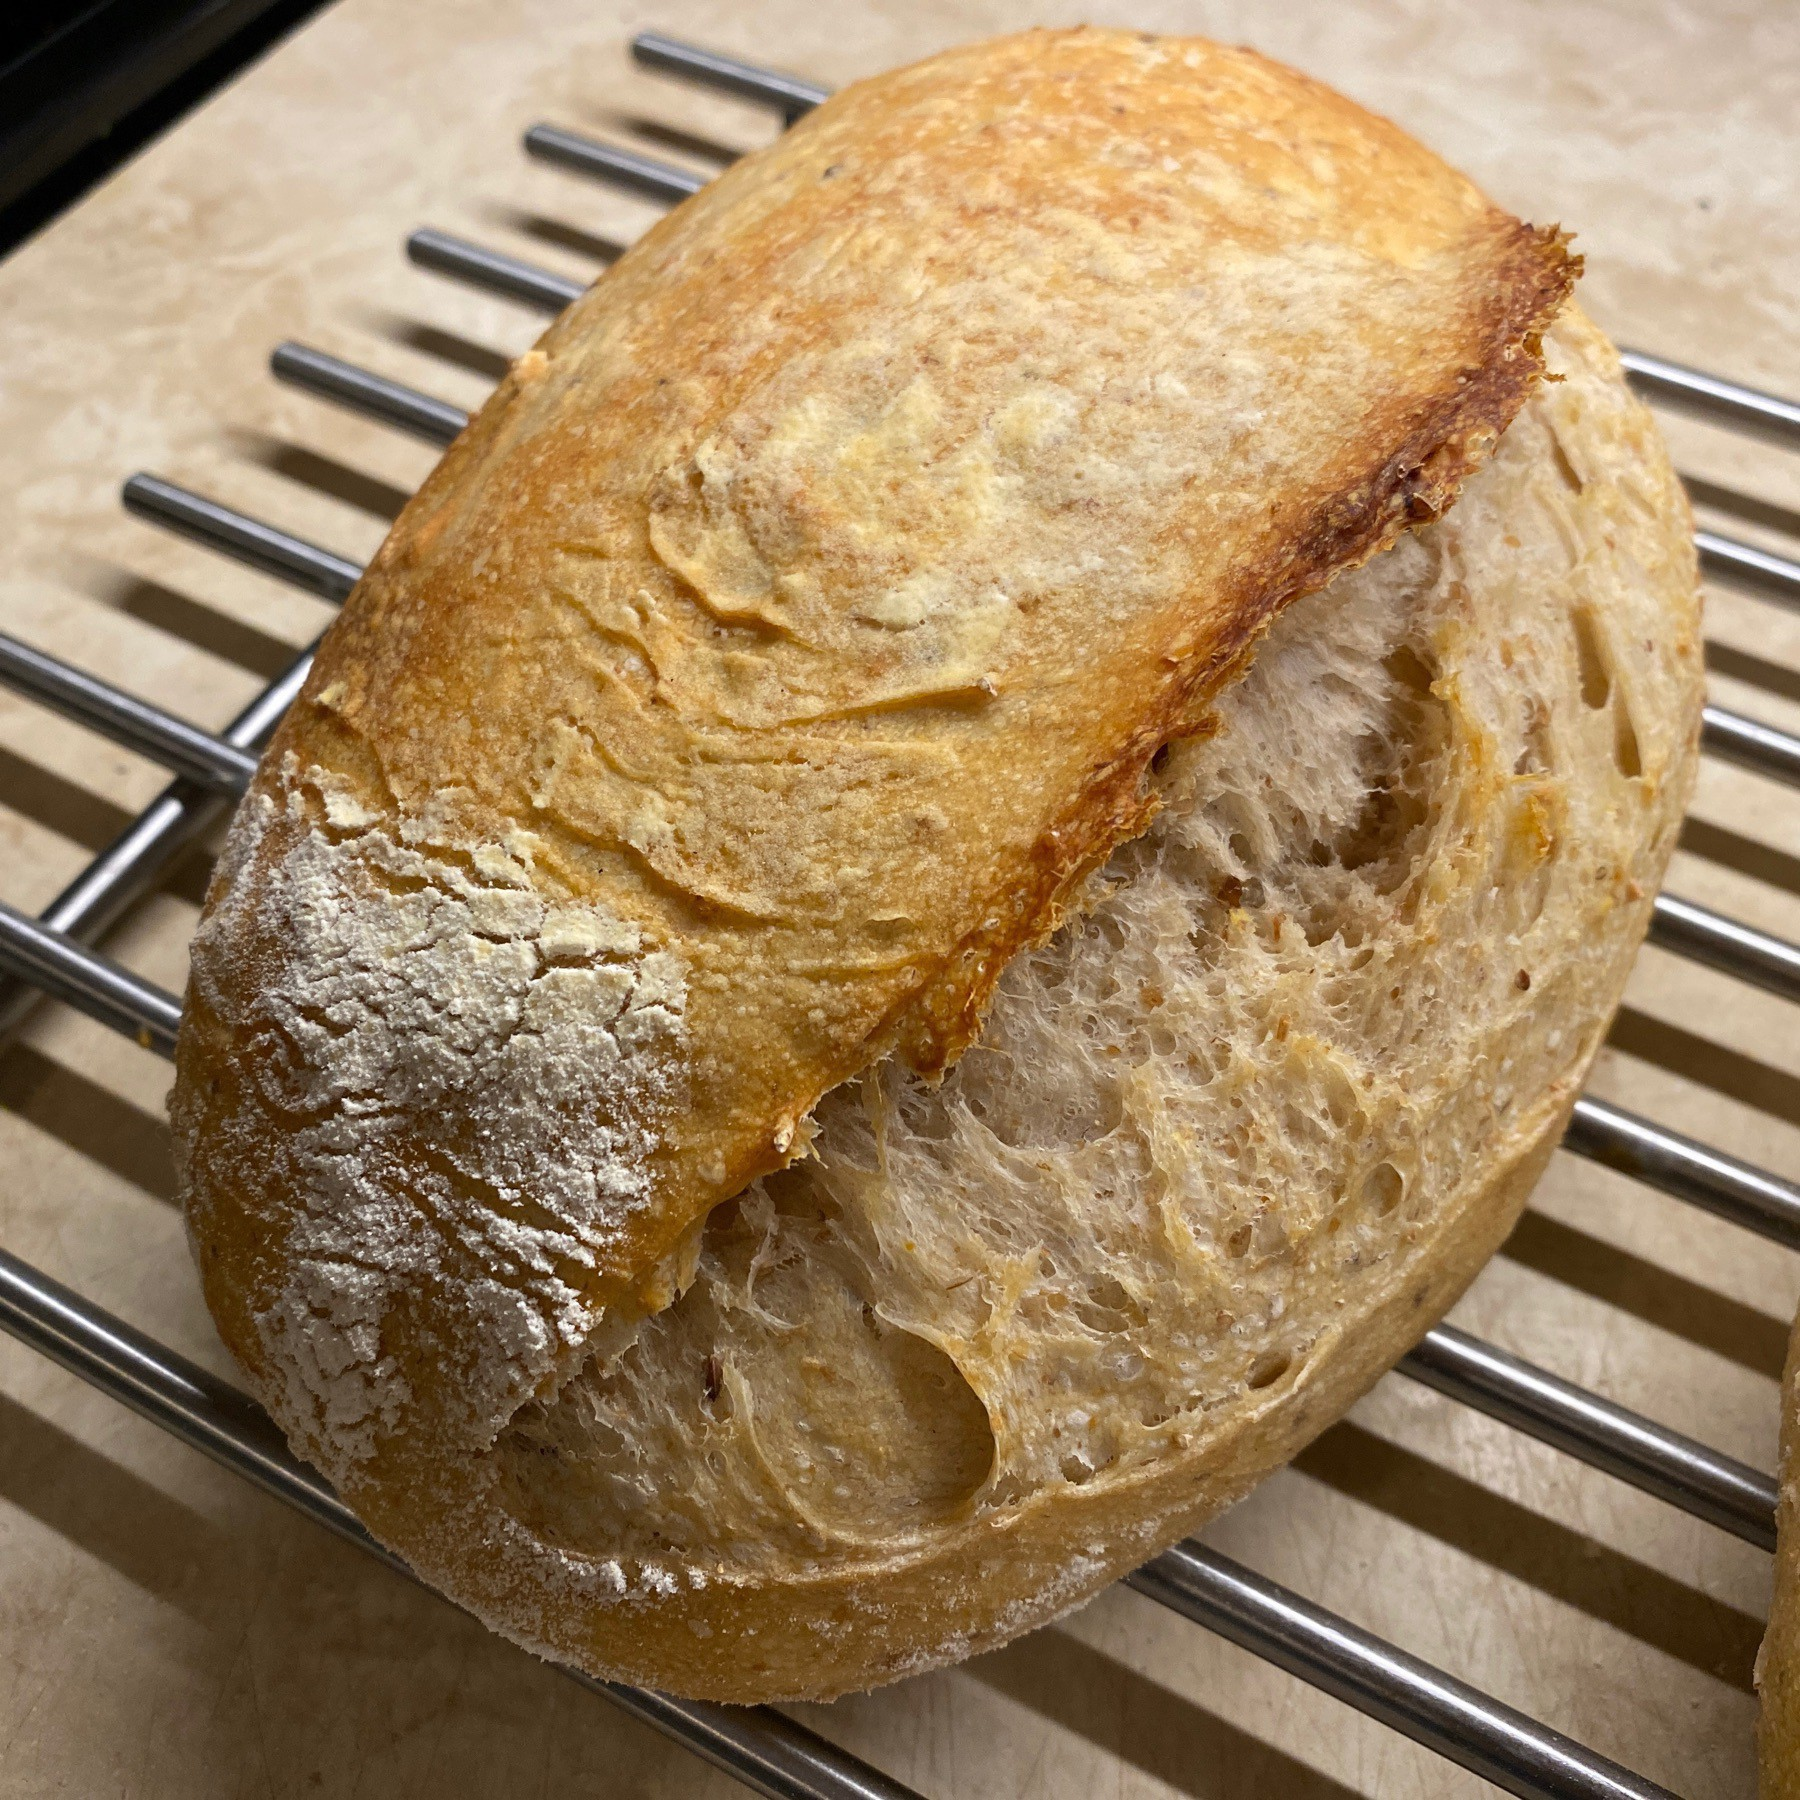 Sourdough bread loaf cooling on metal rack.